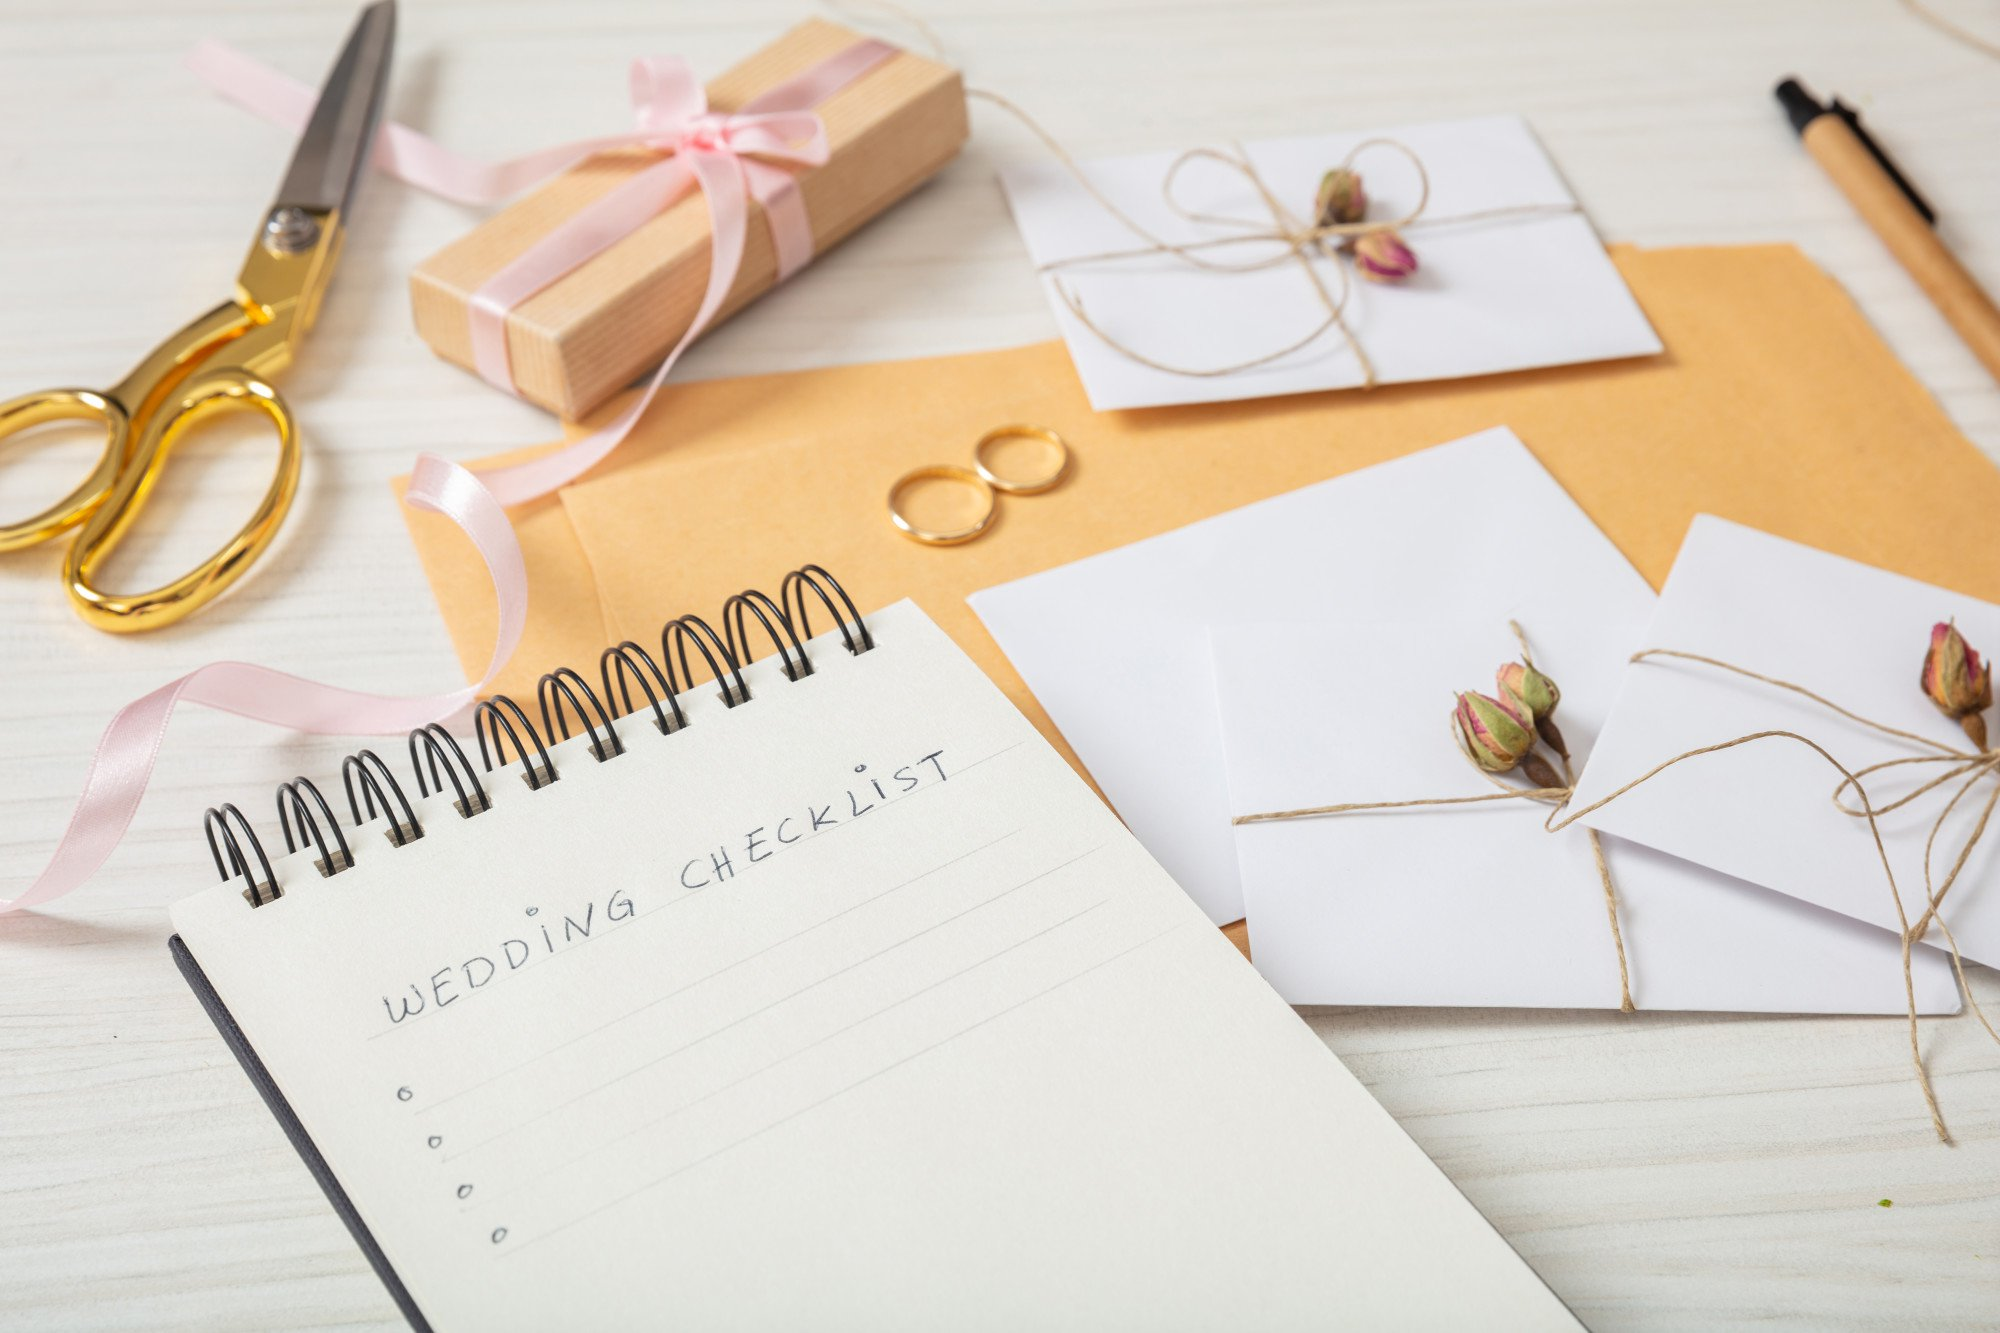 Essential Tips for Creating the Best Wedding Invitations for Your Big Day #wedding #weddinginvitations #invitations #weddingplanning